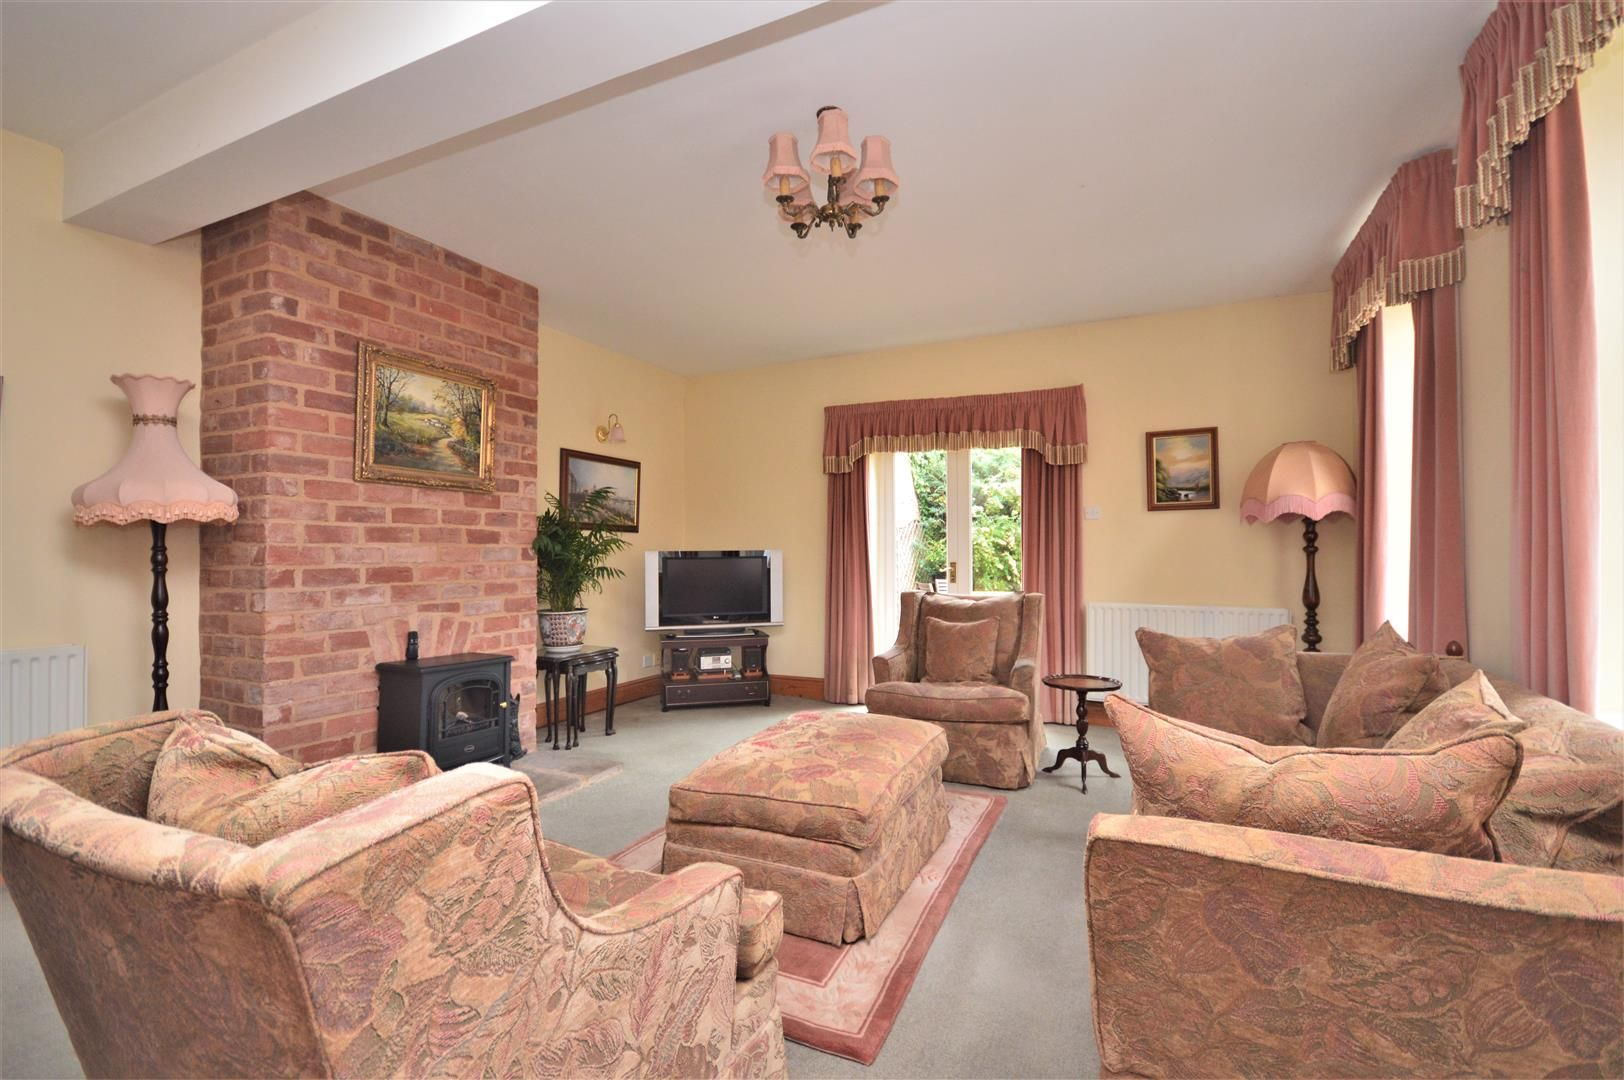 4 bed semi-detached for sale in Nr Madley 6